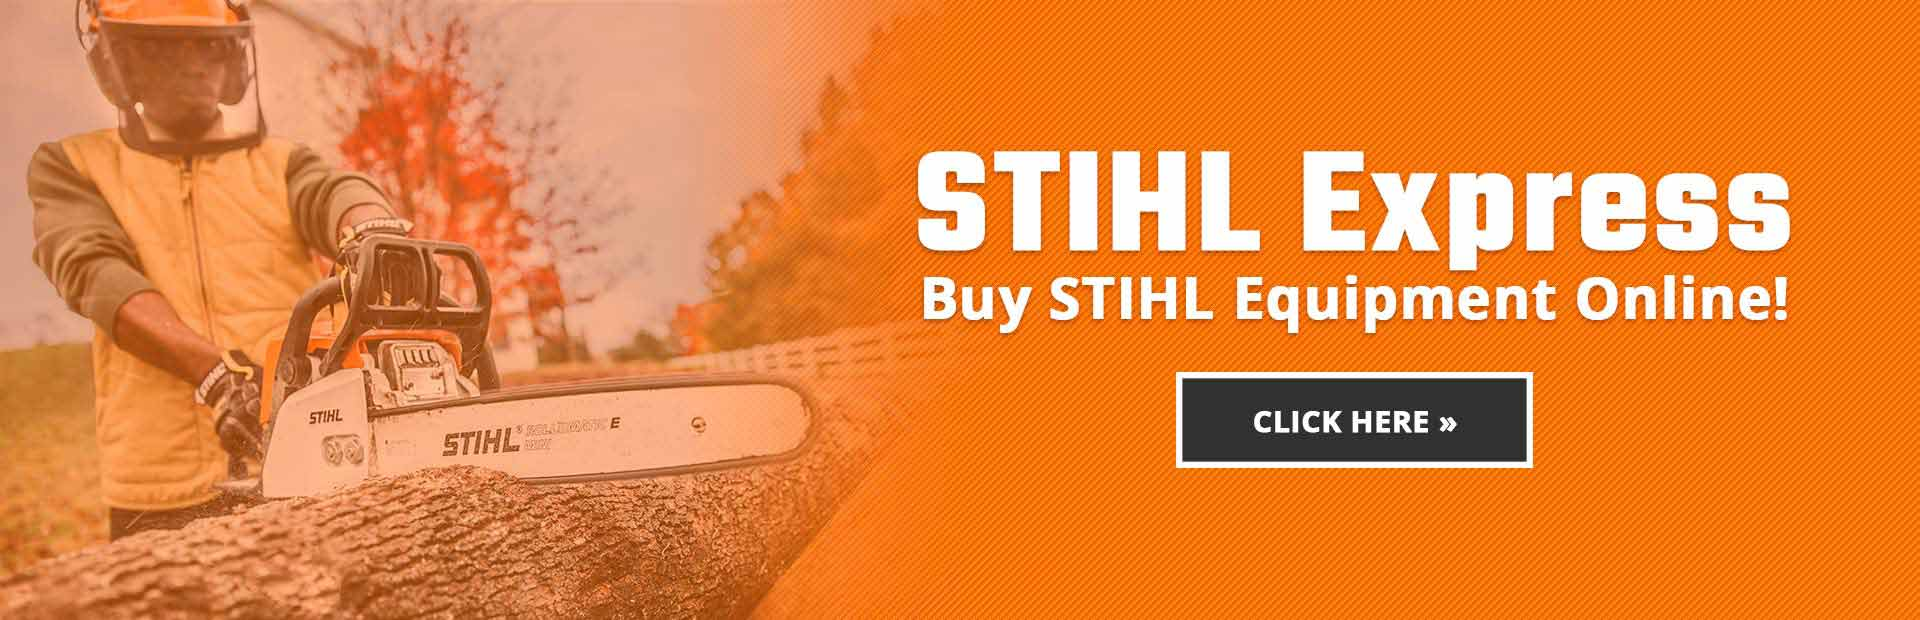 STIHL Express: Buy STIHL equipment online!